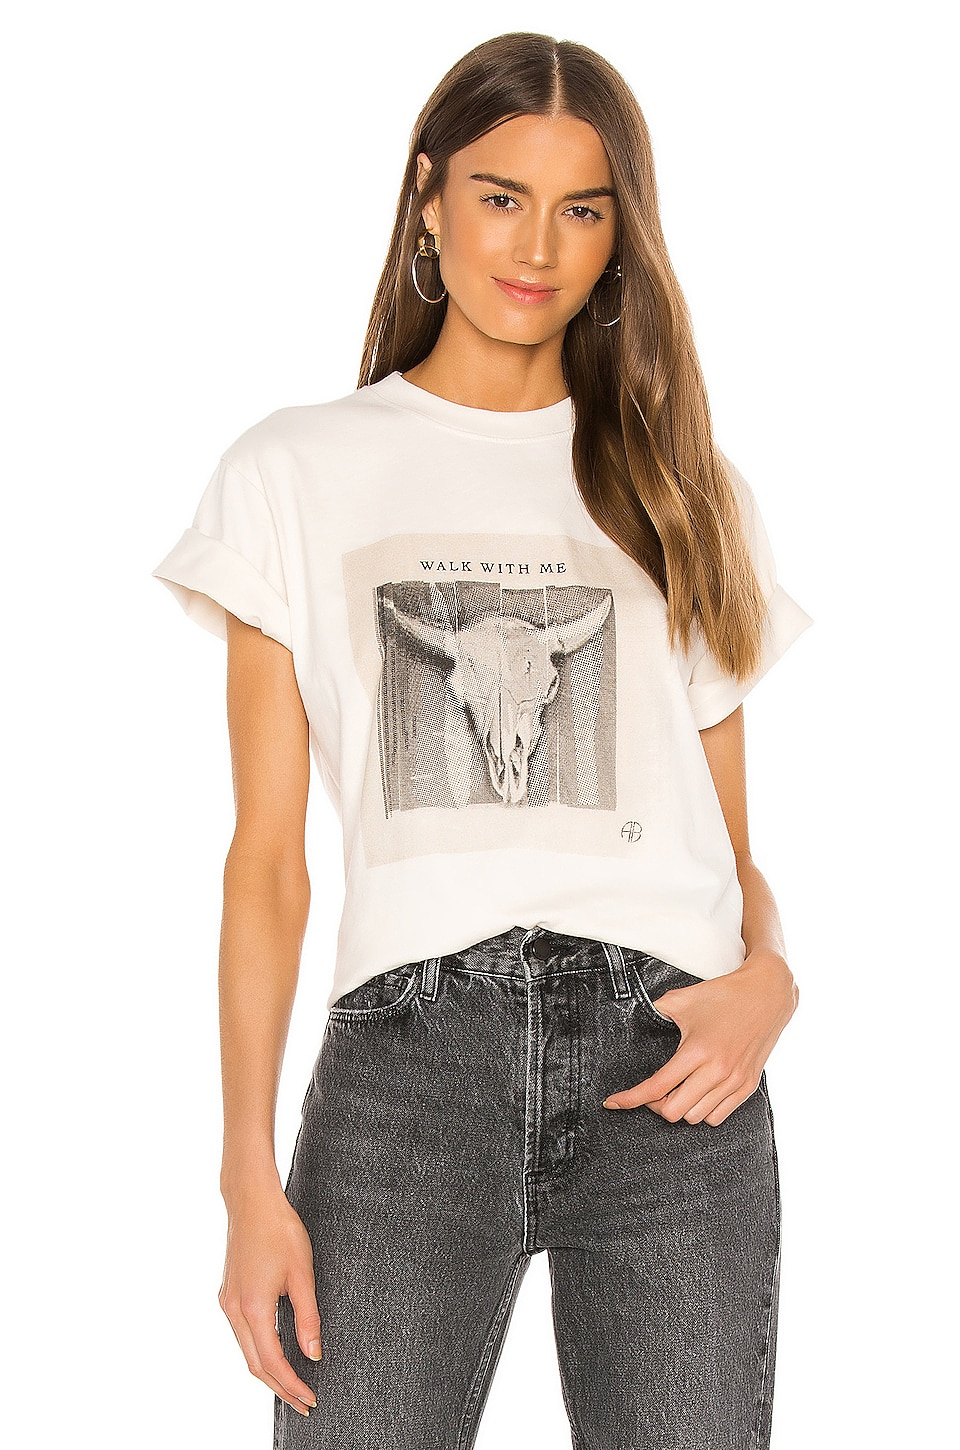 Lili Walk With Me Tee             ANINE BING                                                                                                       CA$ 131.64 7